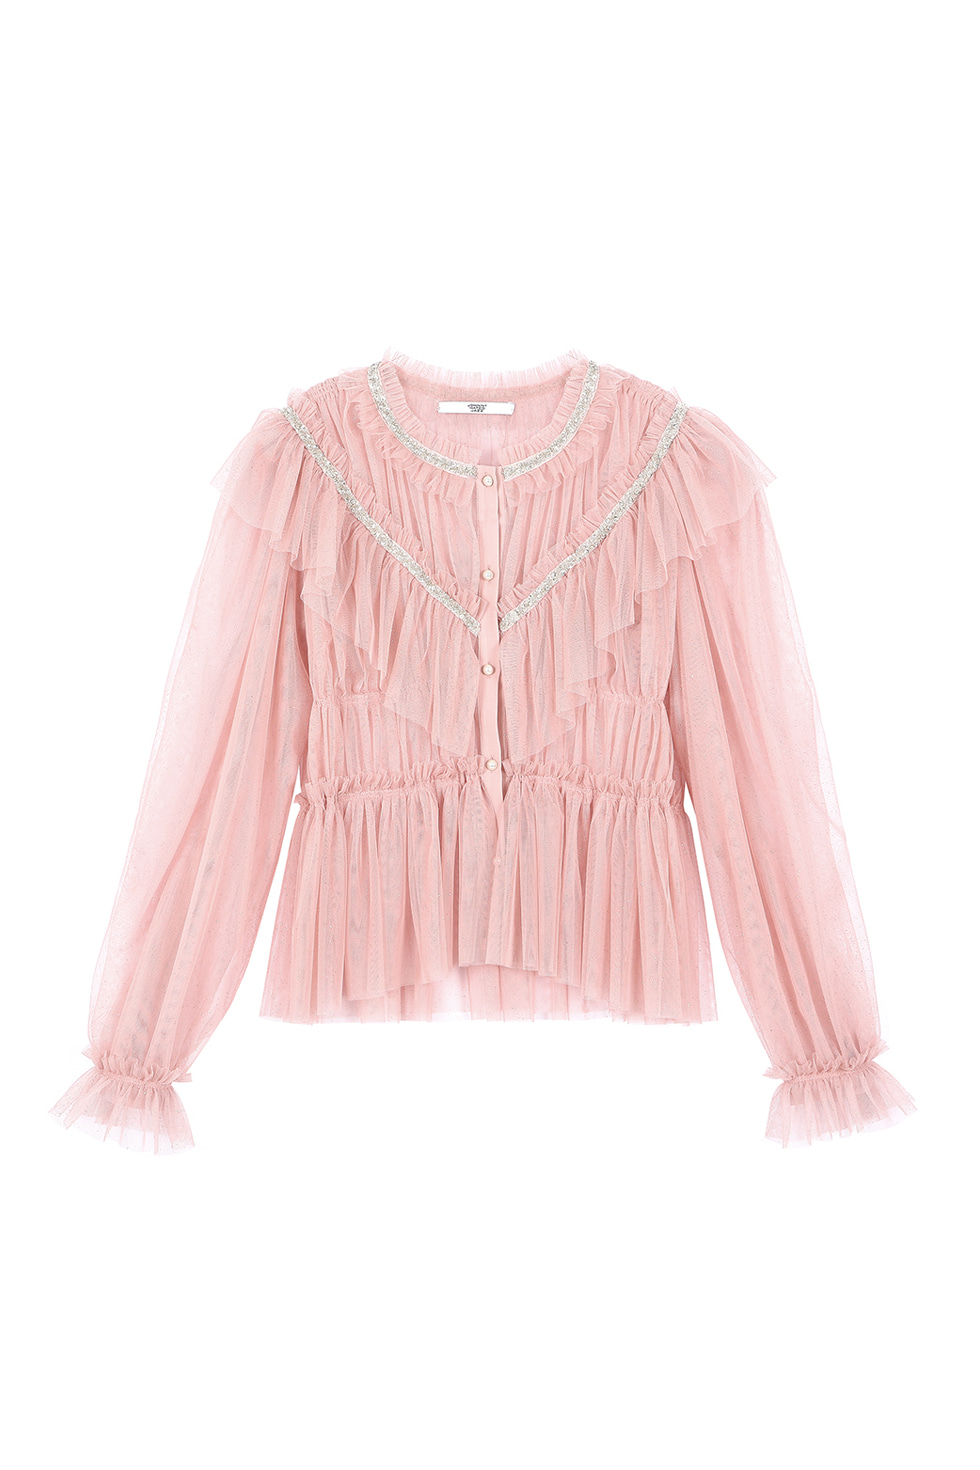 SPANGLE TULLE BLOUSE - PINK